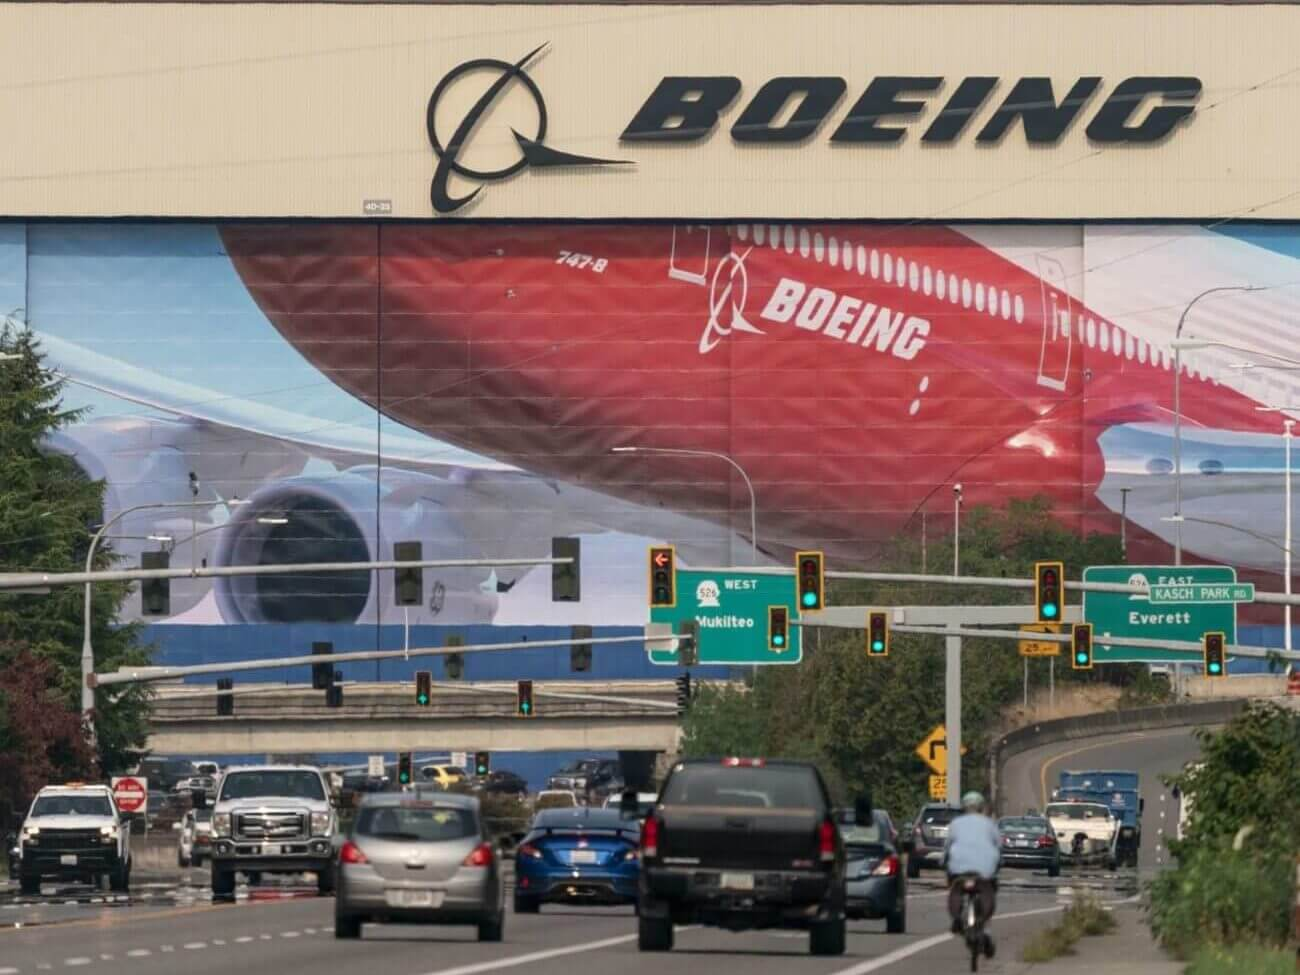 Boeing Is the Latest Company to Accumulate away a Adverse Commerce Atmosphere